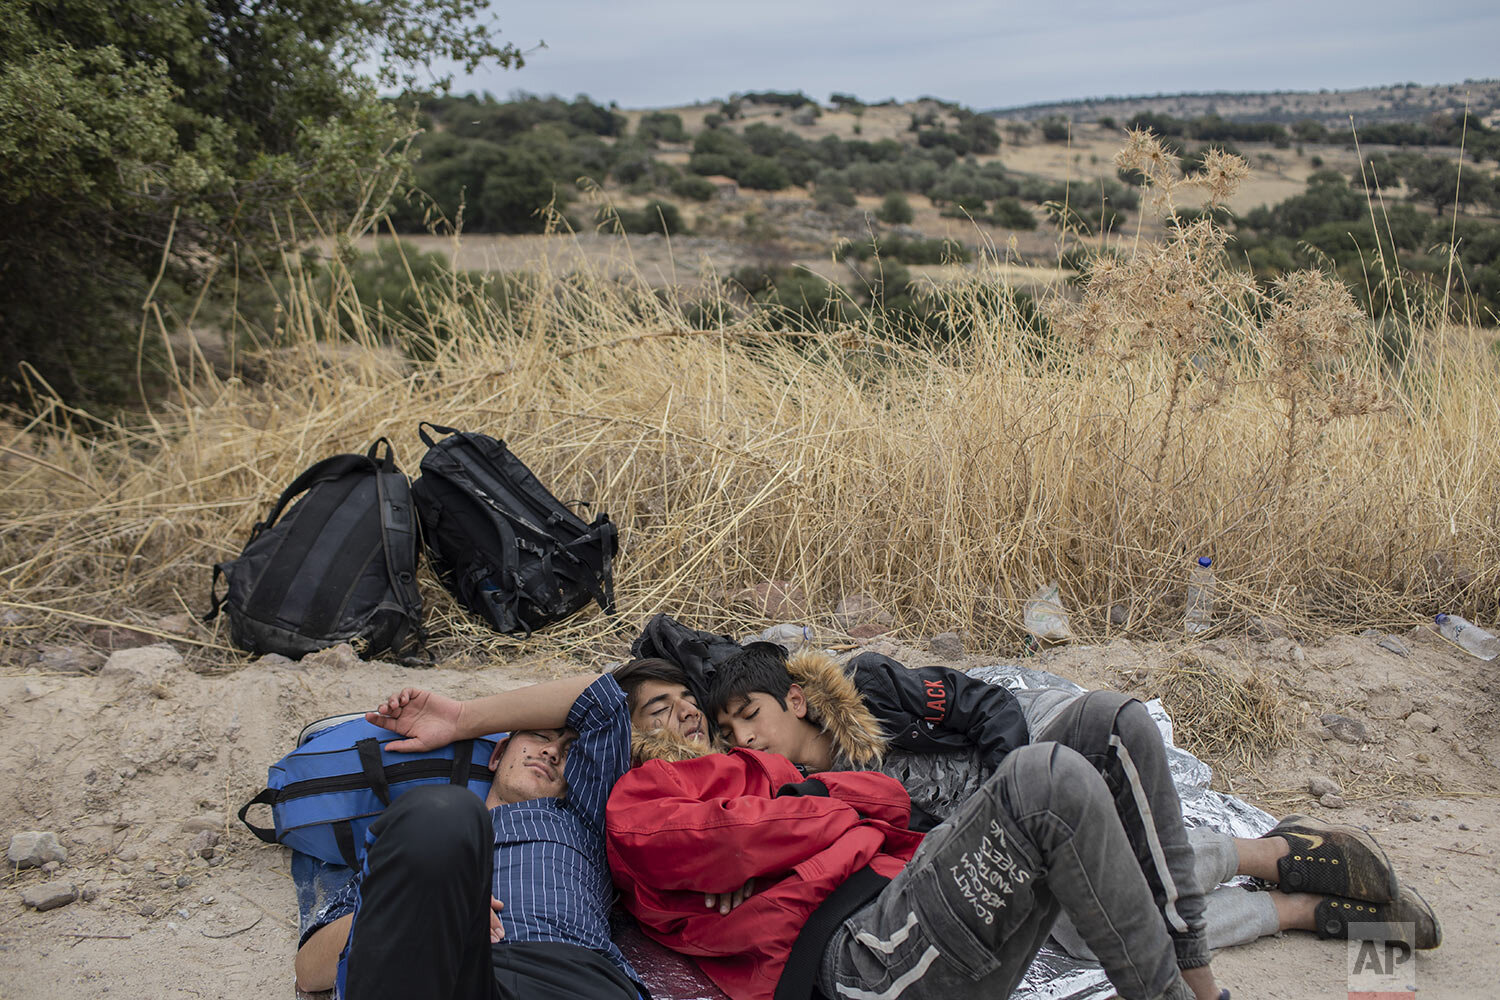 Exhausted Afghan youths sleep on the ground near the town of Madamados after their arrival with other migrants and refugees on a rubber boat from Turkey, at Lesbos Island, Greece, Monday, Oct. 7, 2019. (AP Photo/Petros Giannakouris)